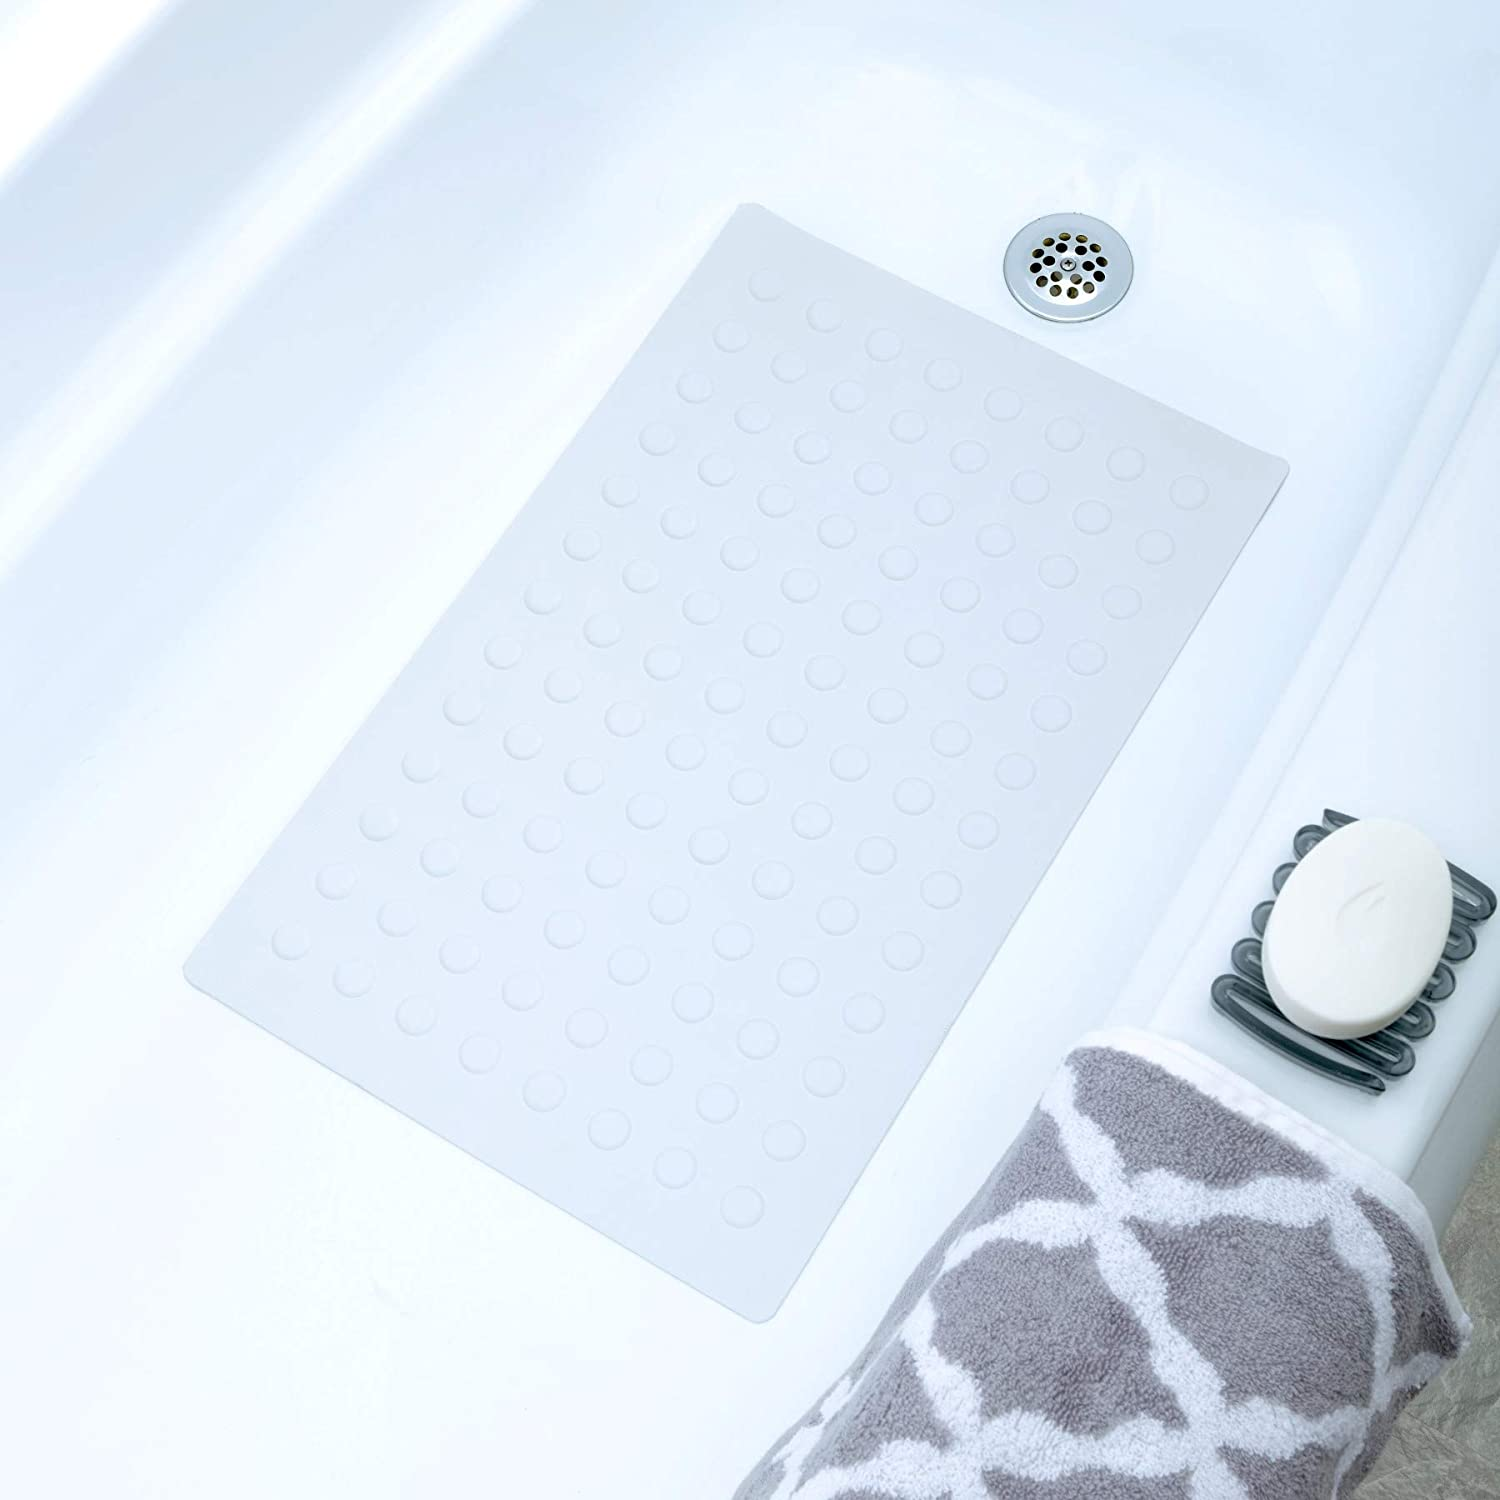 "SlipX Solutions White Rubber Bath Safety Mat Provides Essential Coverage & Reliable Slip-Resistance in Tubs & Showers (14"" x 22"", 100+ Suction Cups, Machine Washable): Home & Kitchen"